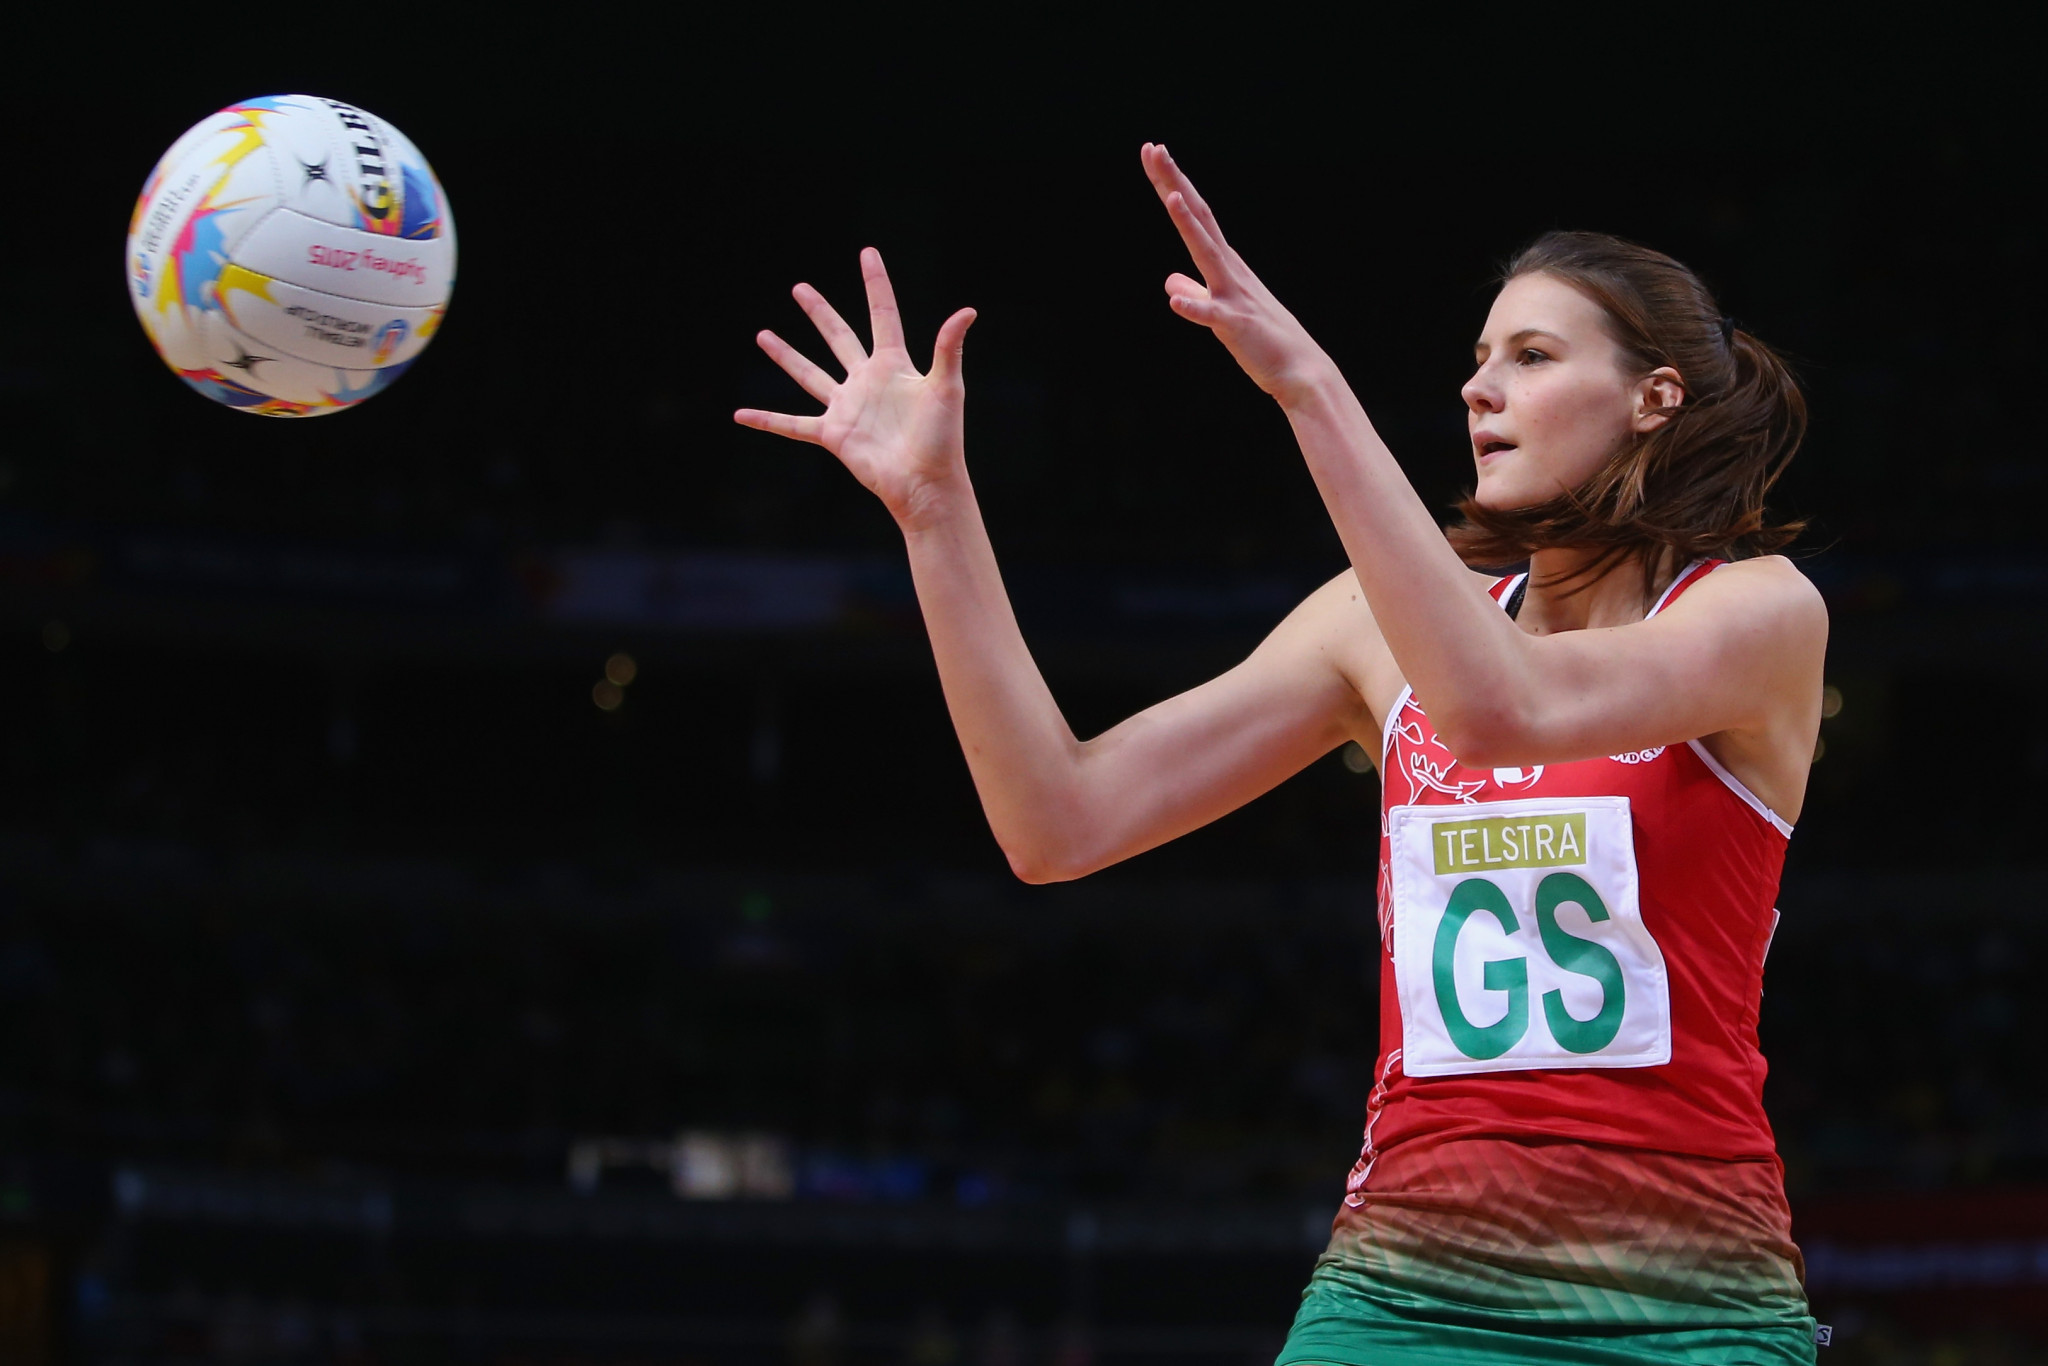 Wales name netball squad for Gold Coast 2018